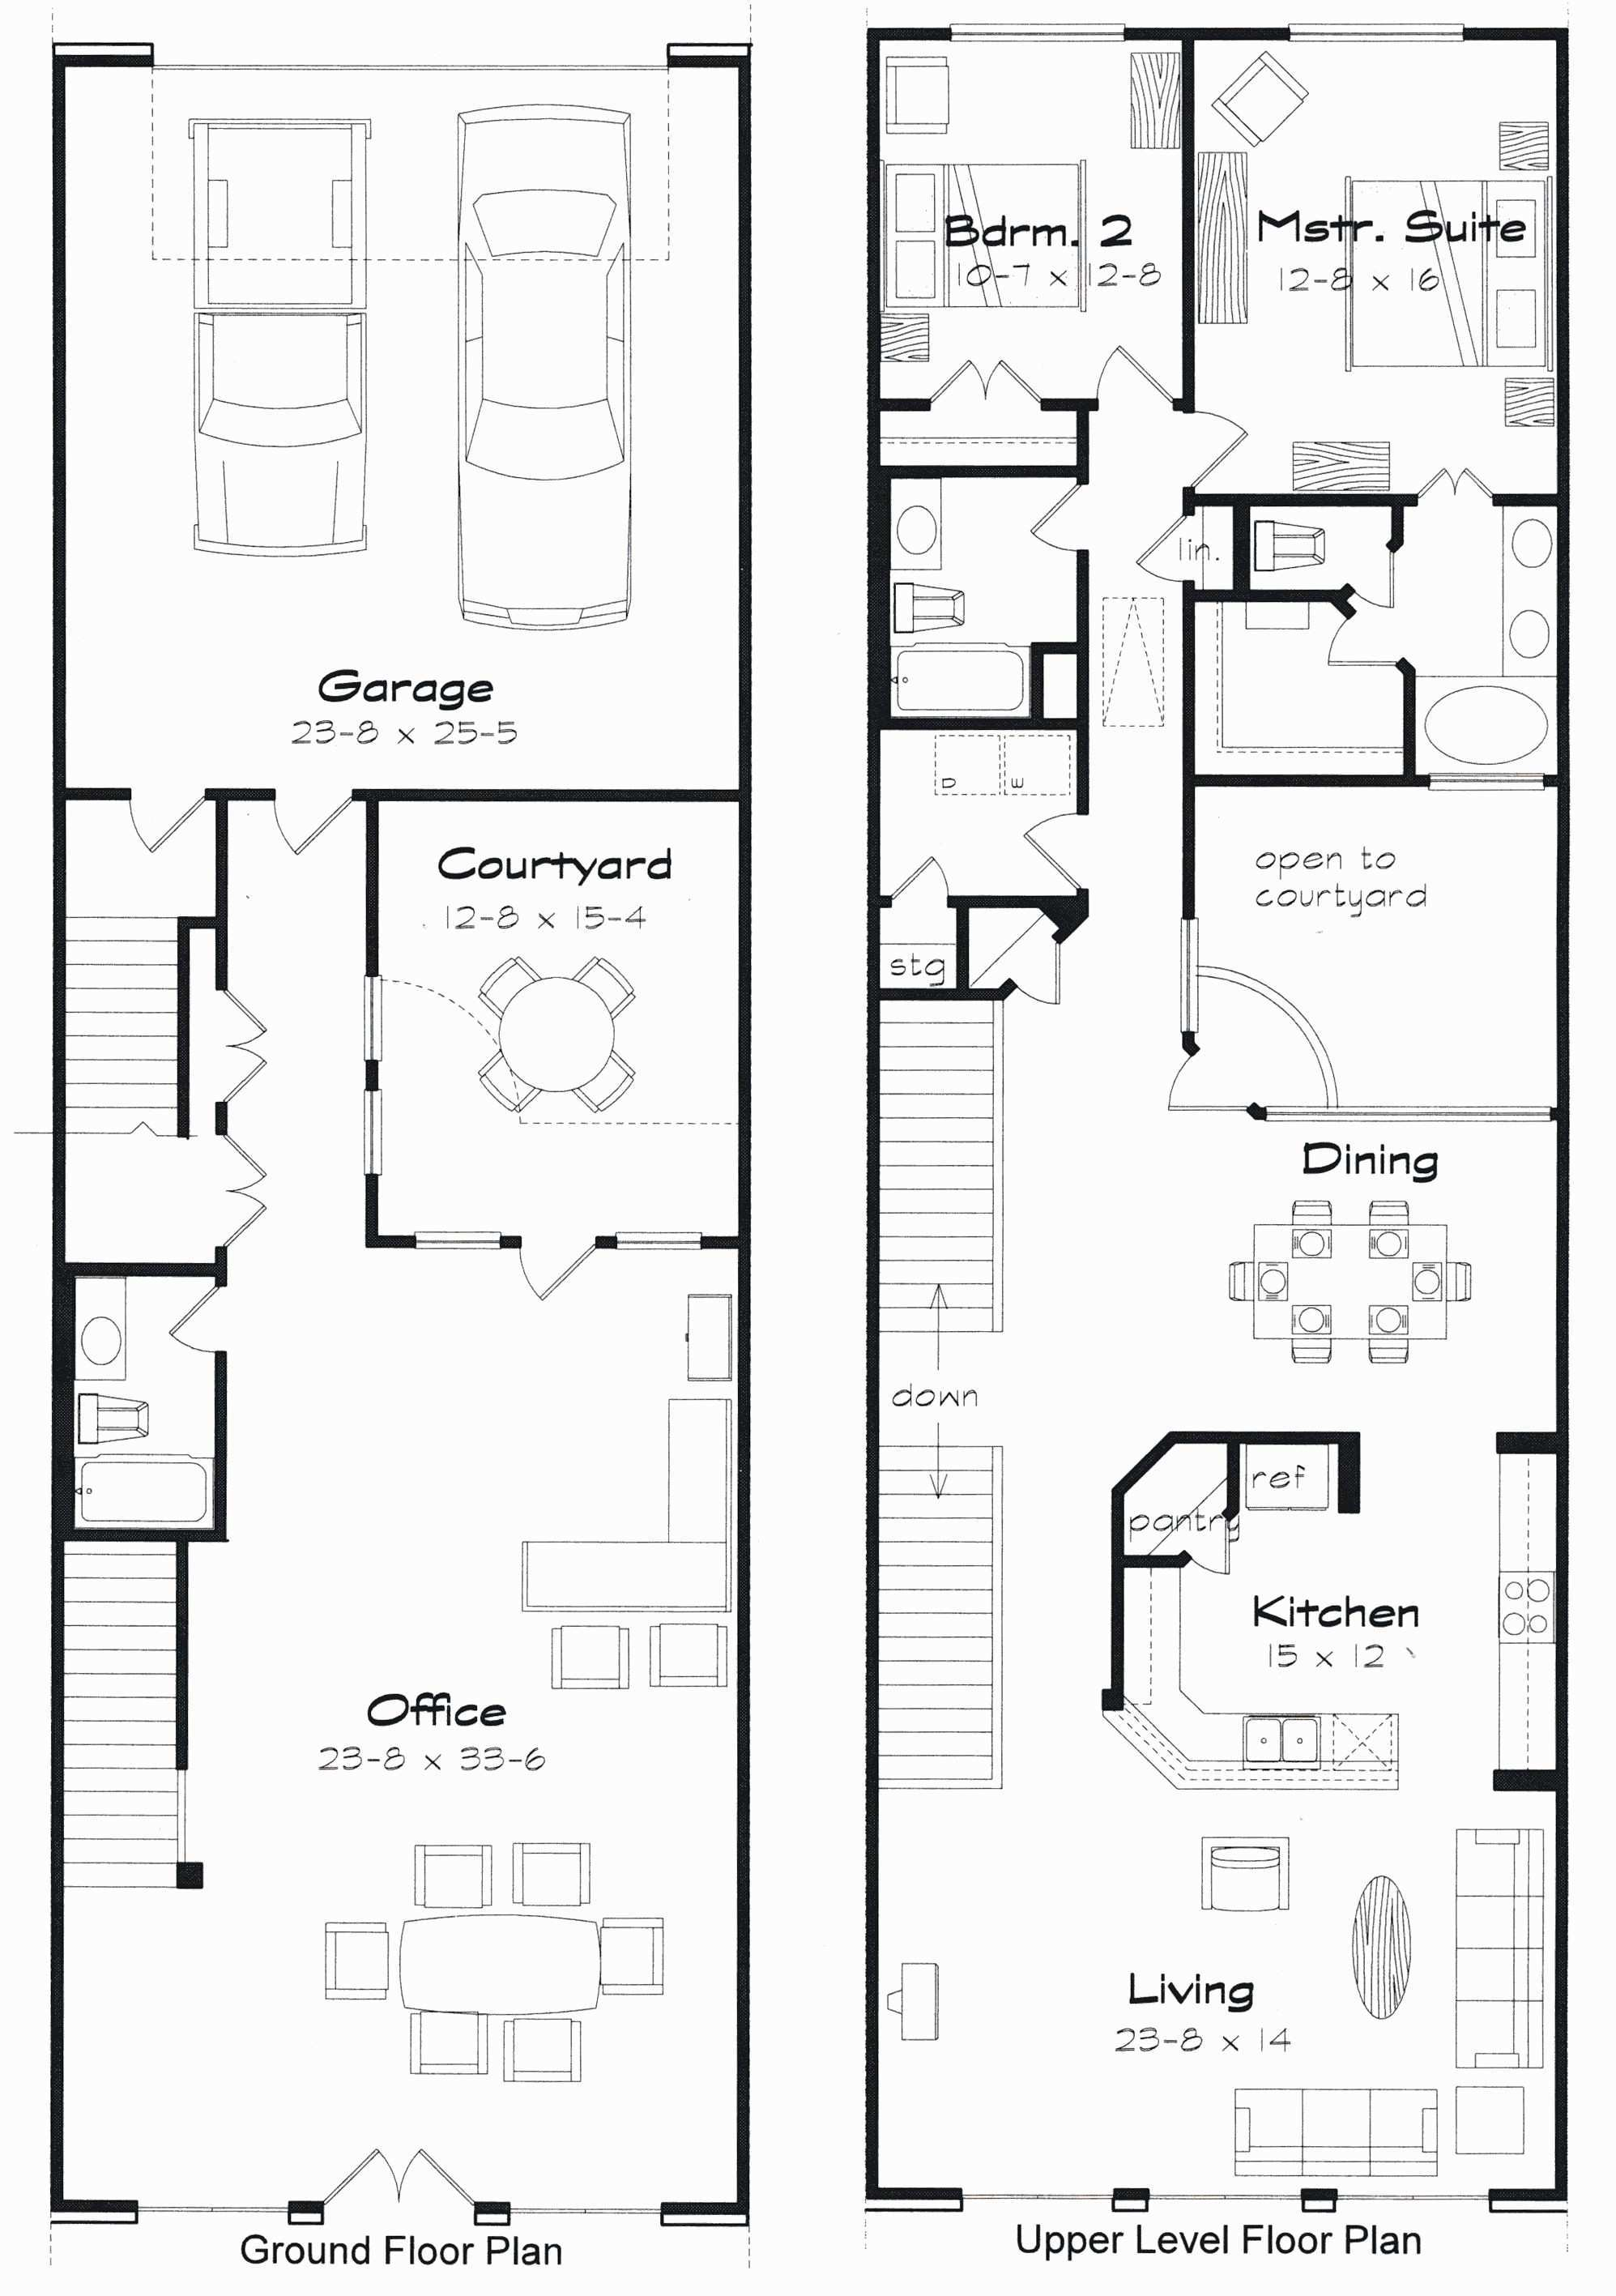 8 X 12 Kitchen Floor Plan Beautiful Awesome L Type Home Plan S Home